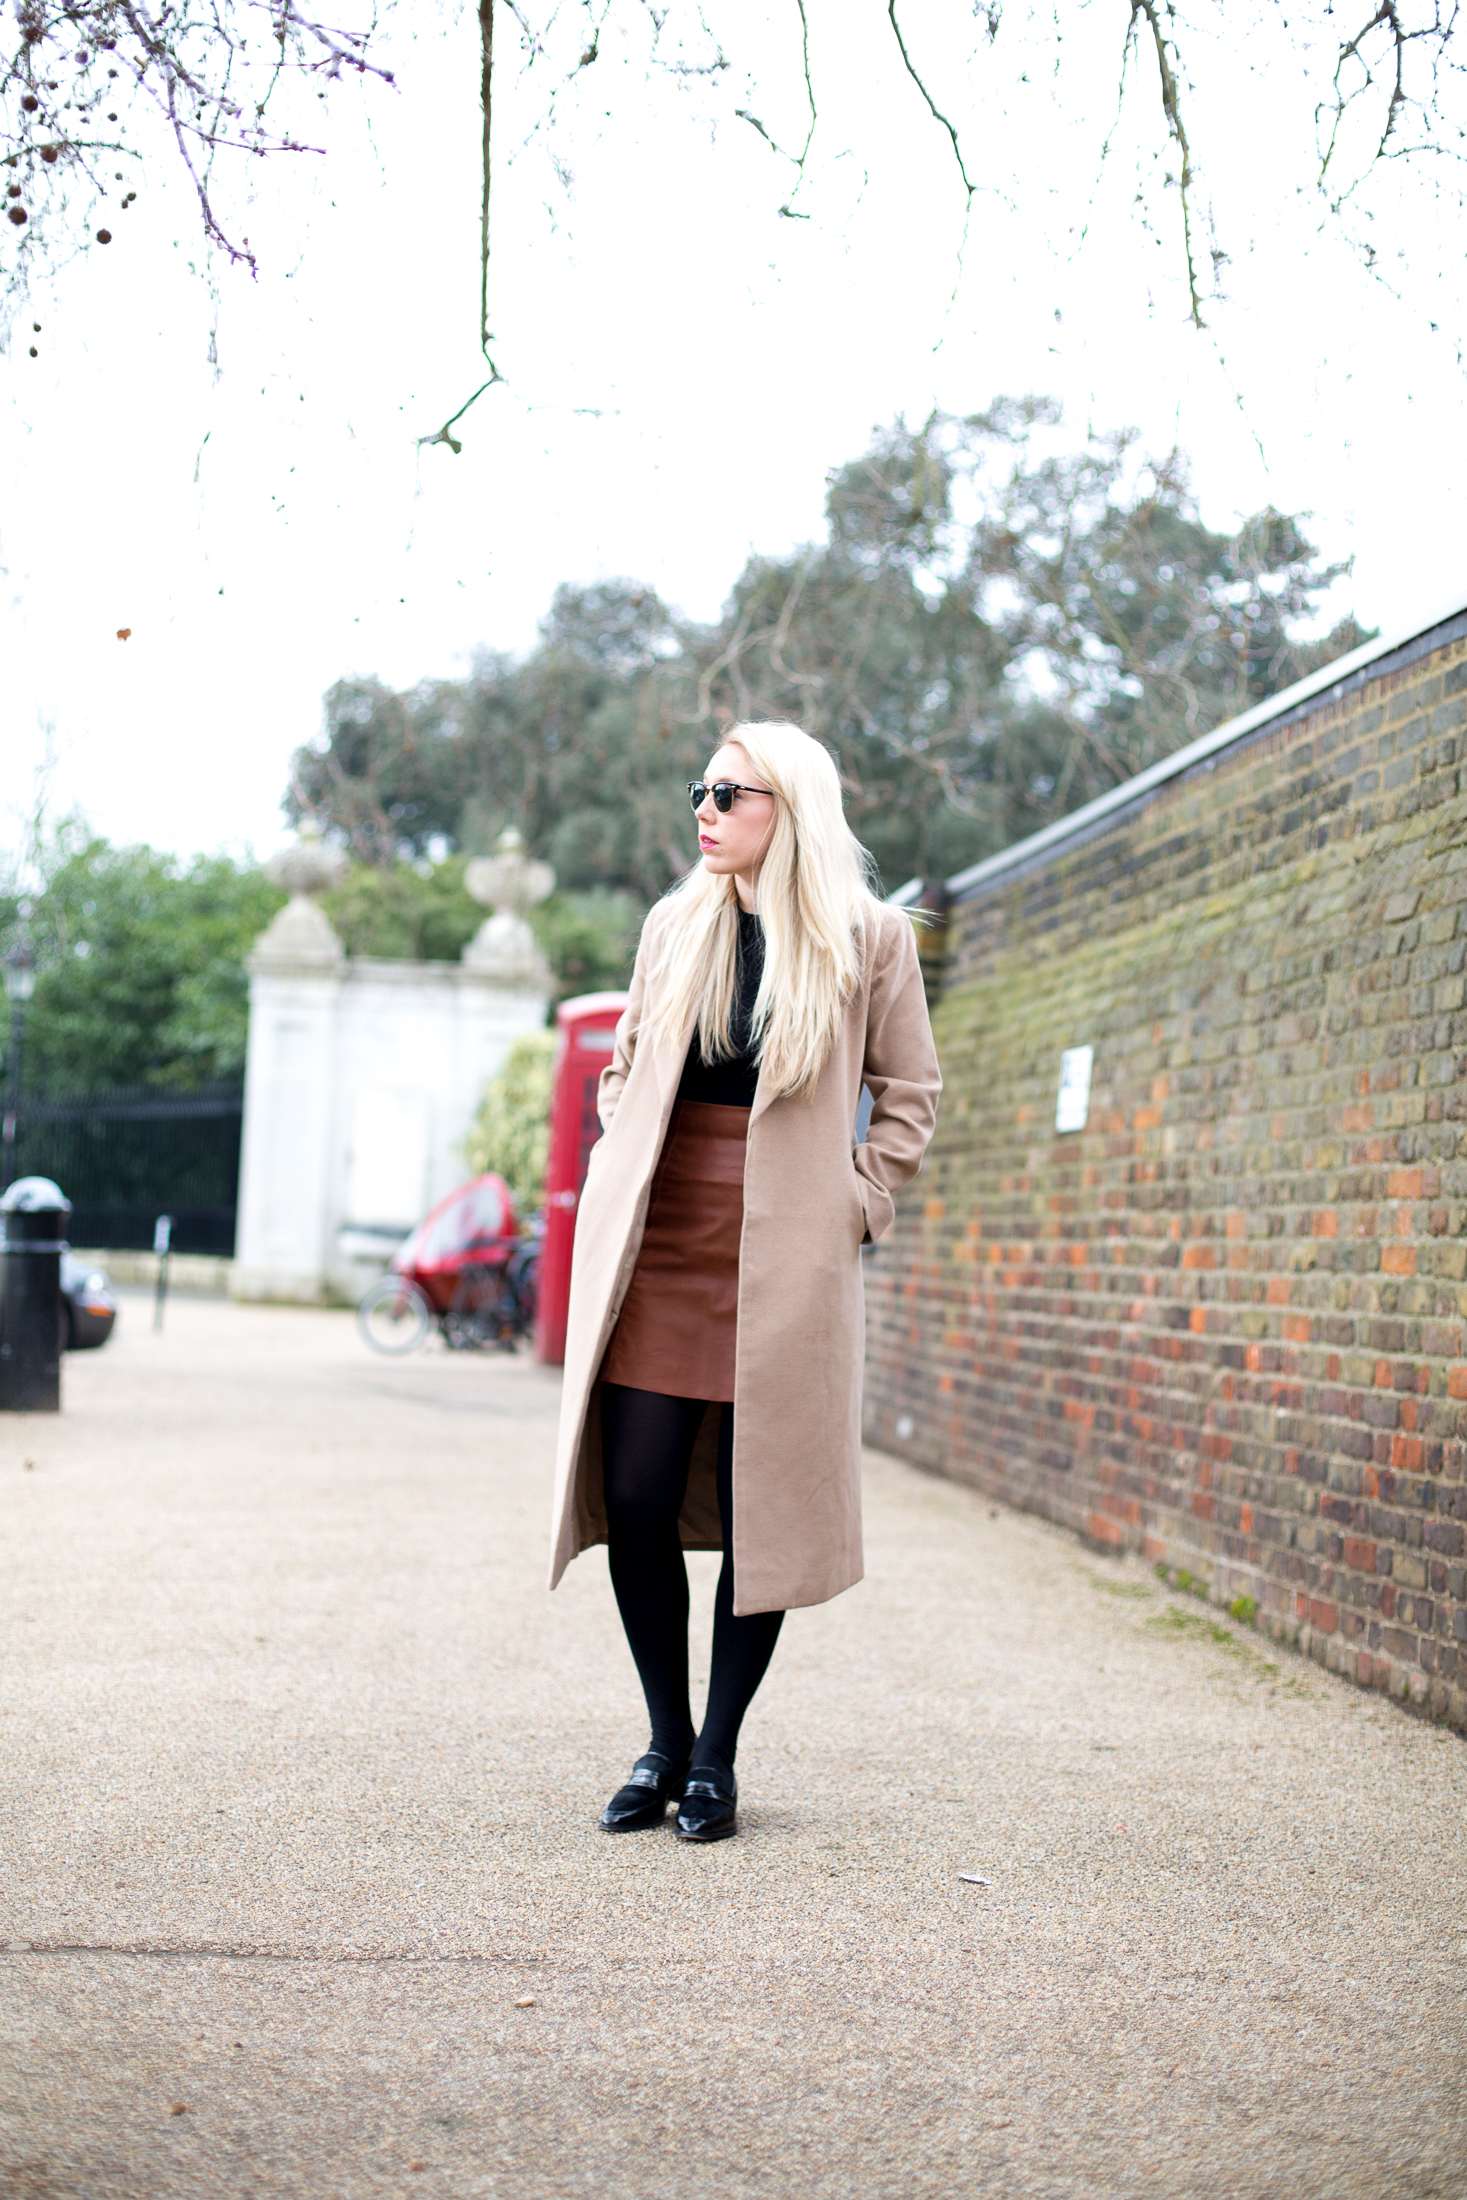 LEATHER SKIRT AND CAMEL COAT